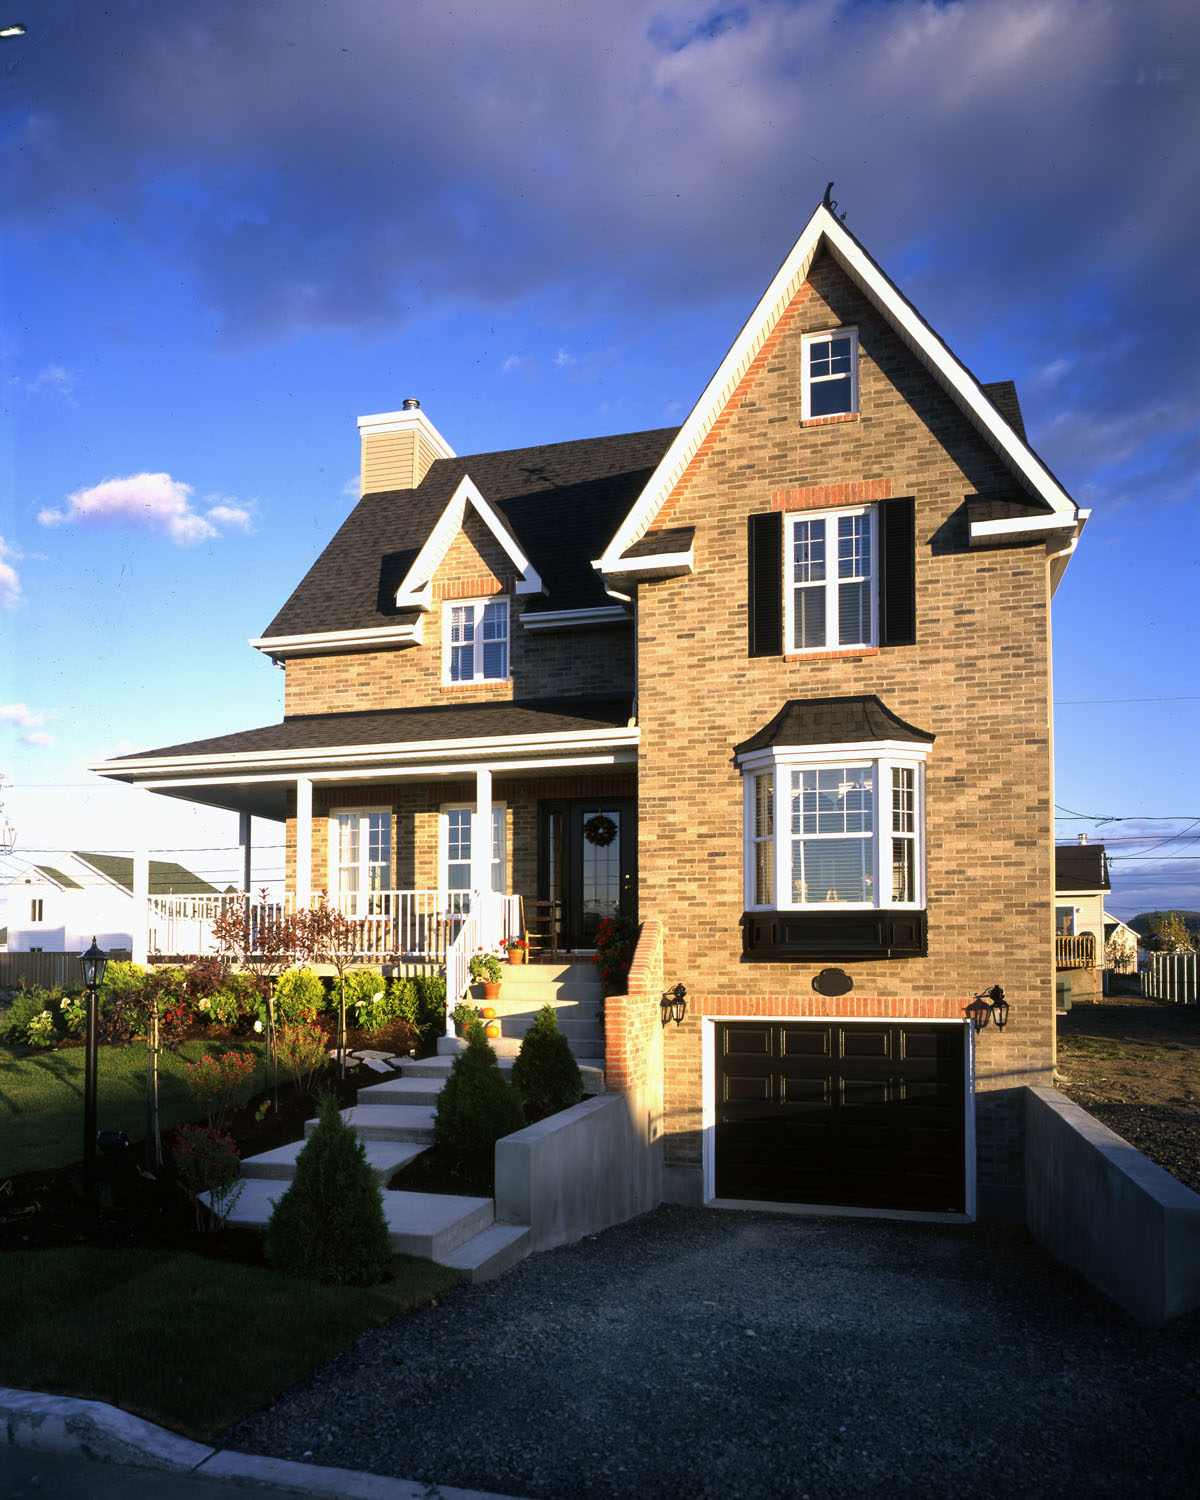 Farmhouse With 3 Sided Wraparound Porch 90167PD